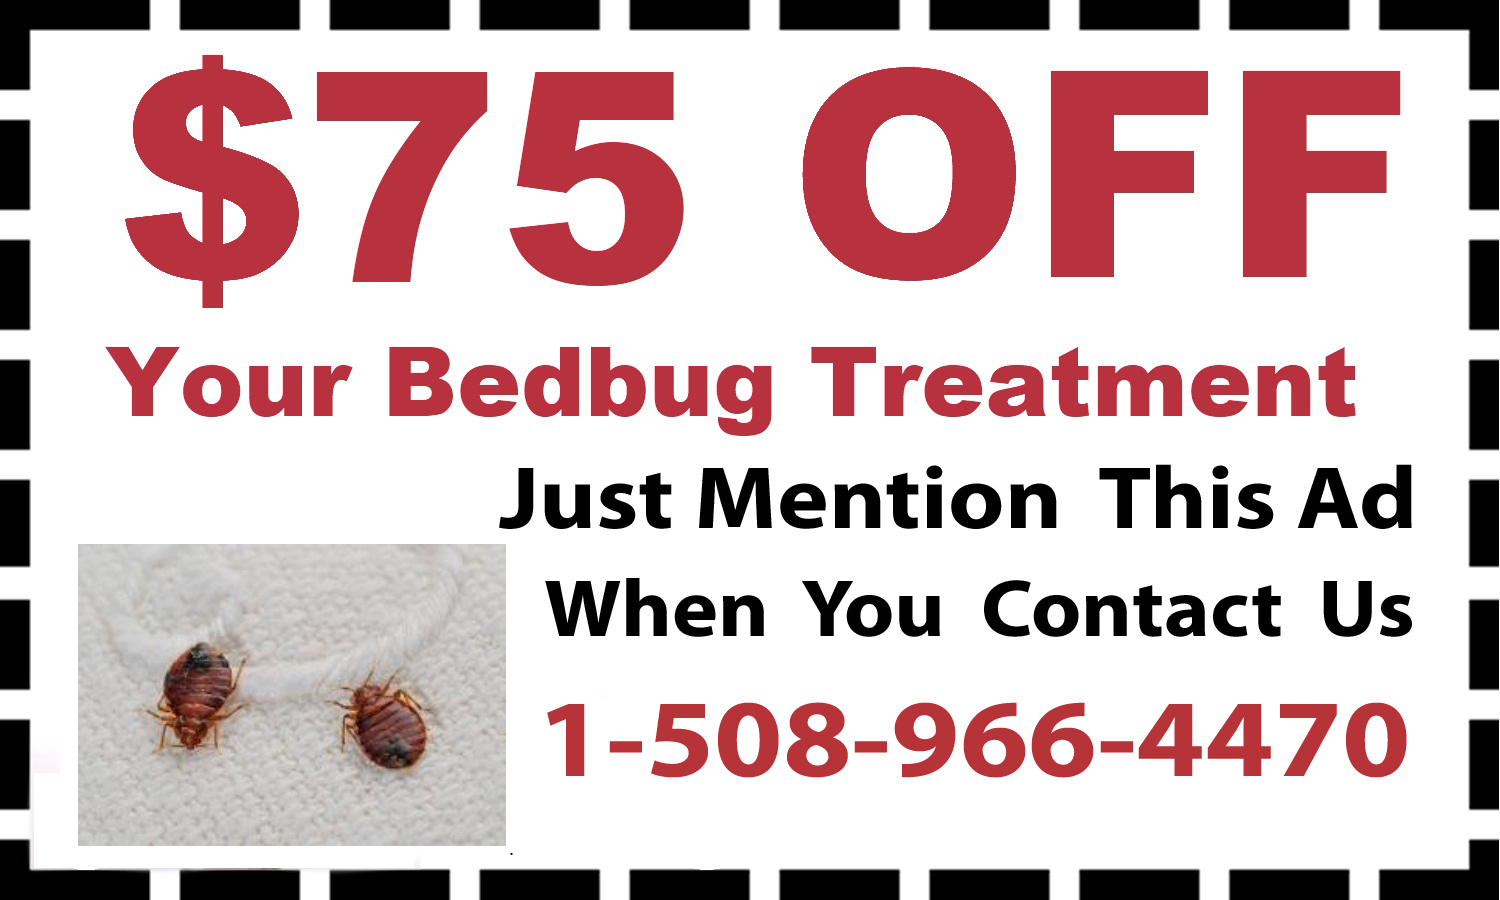 BedBug Treatment Smithfield, RI